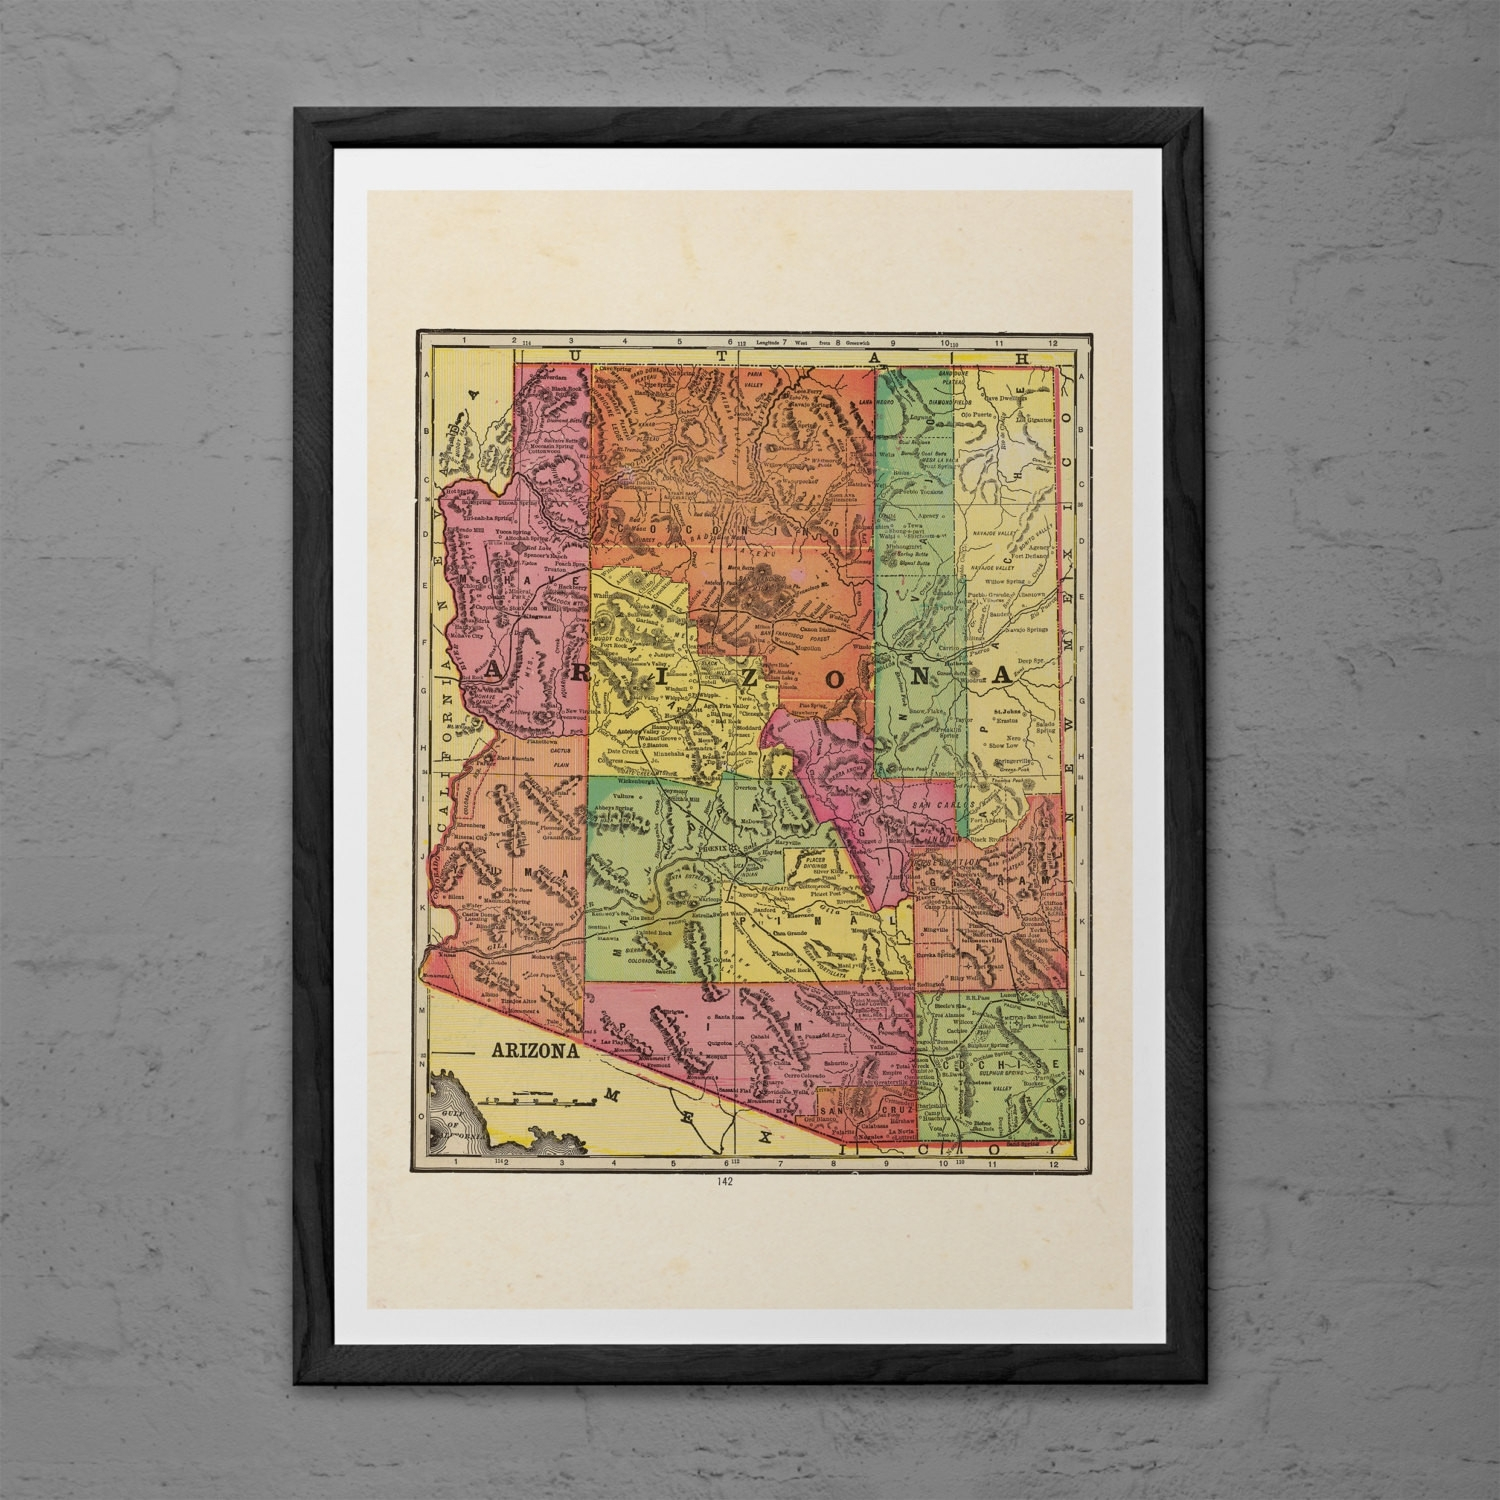 Arizona Wall Decor Awesome Arizona Printable State Wall Art Az Print regarding Arizona Wall Art (Image 11 of 20)